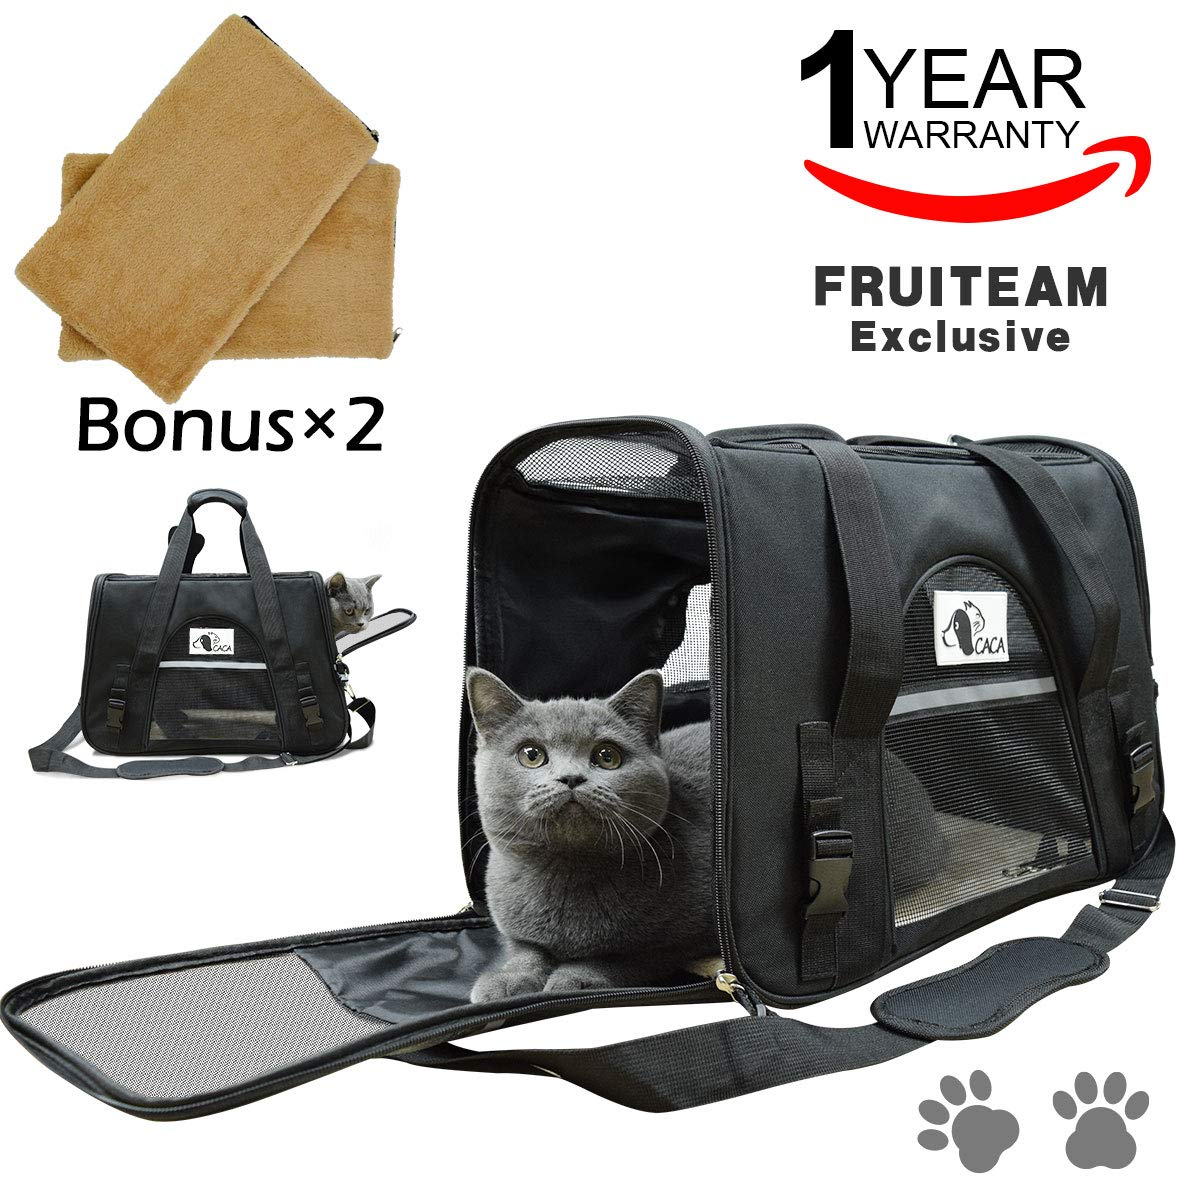 FRUITEAM Cat Carriers Pet Carrier Airline Approved, Small Dog Carrier Soft Sided, Collapsible Portable Travel Dog Carrier for Small and Medium Cats Dogs Puppies (Up to 18lbs)